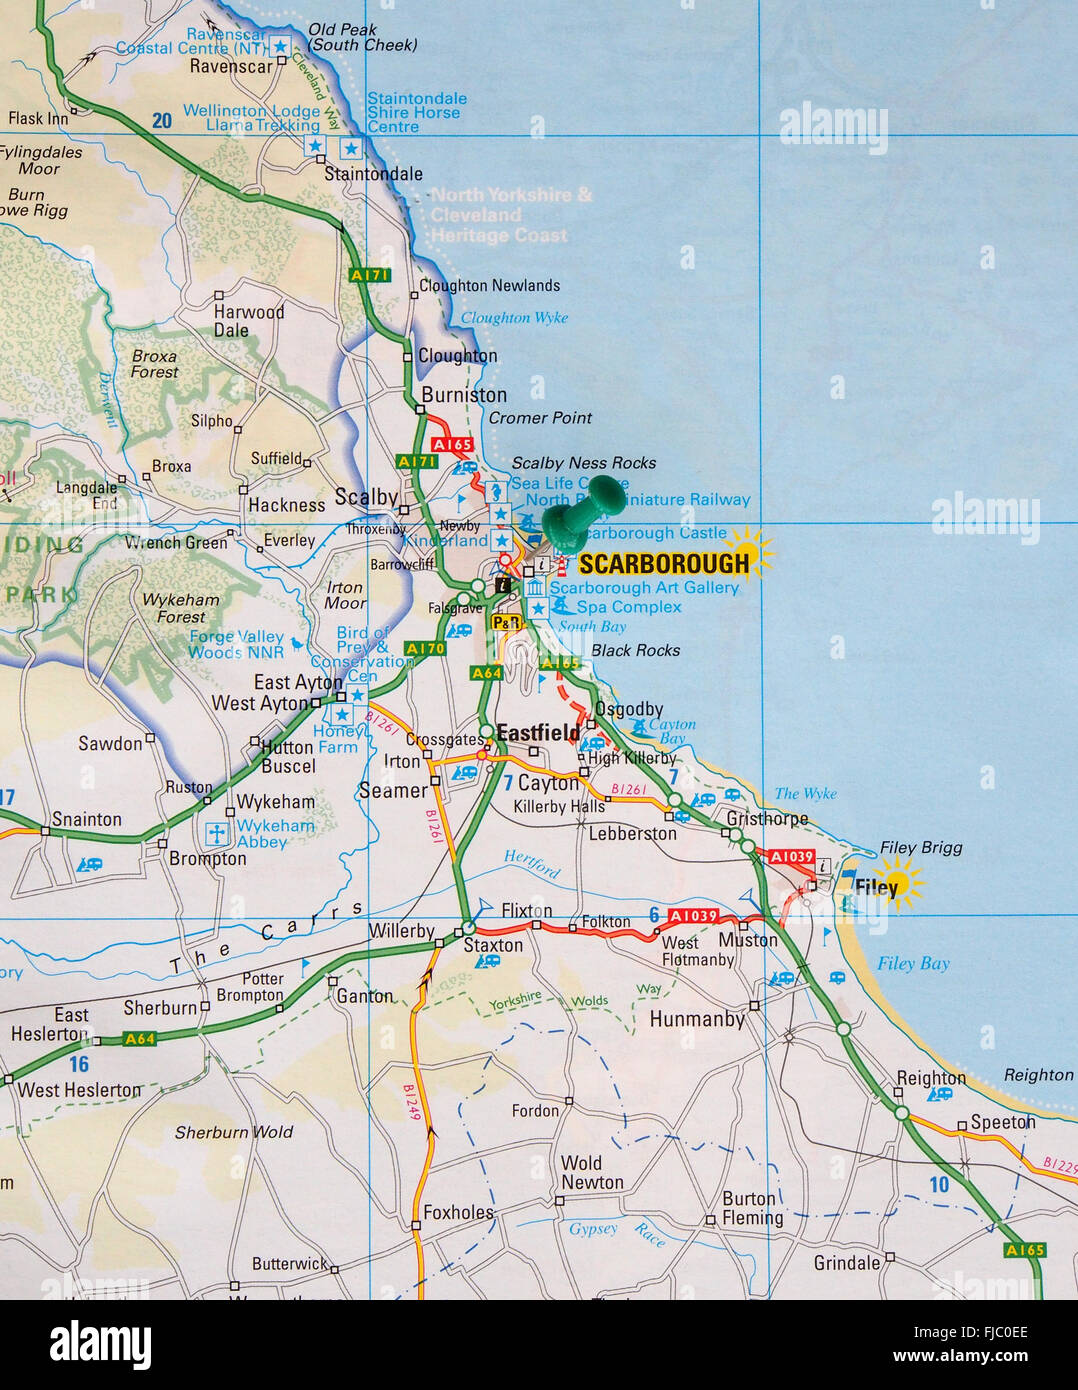 Map Of Uk East Coast.Road Map Of The East Coast Of England Showing Filey And With A Map